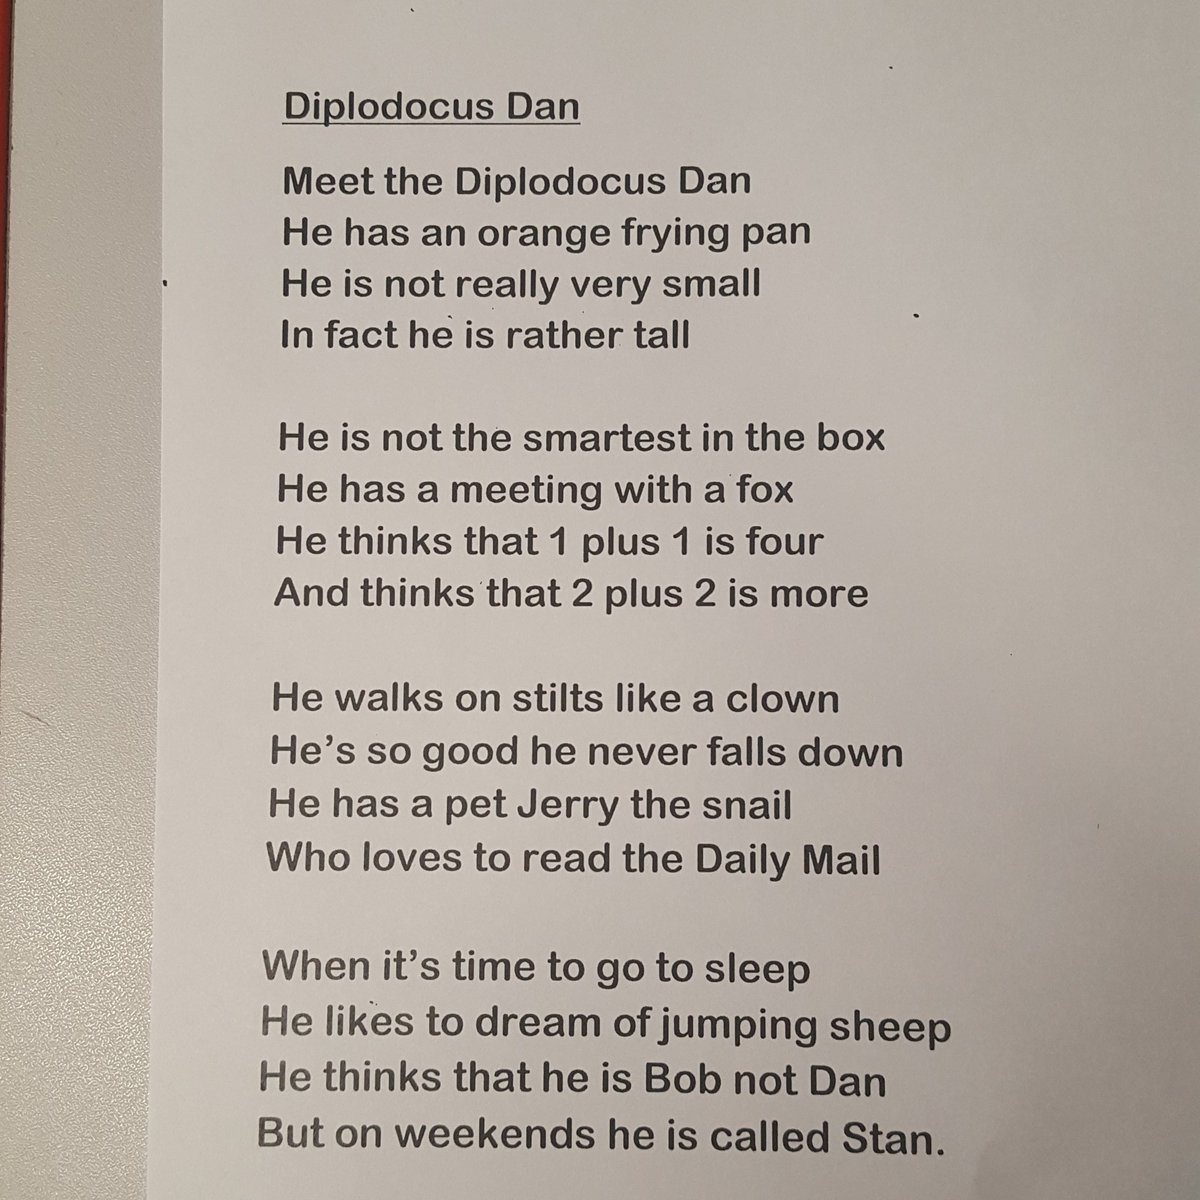 Archibaldfirst On Twitter Look At This Fantastic Poem From